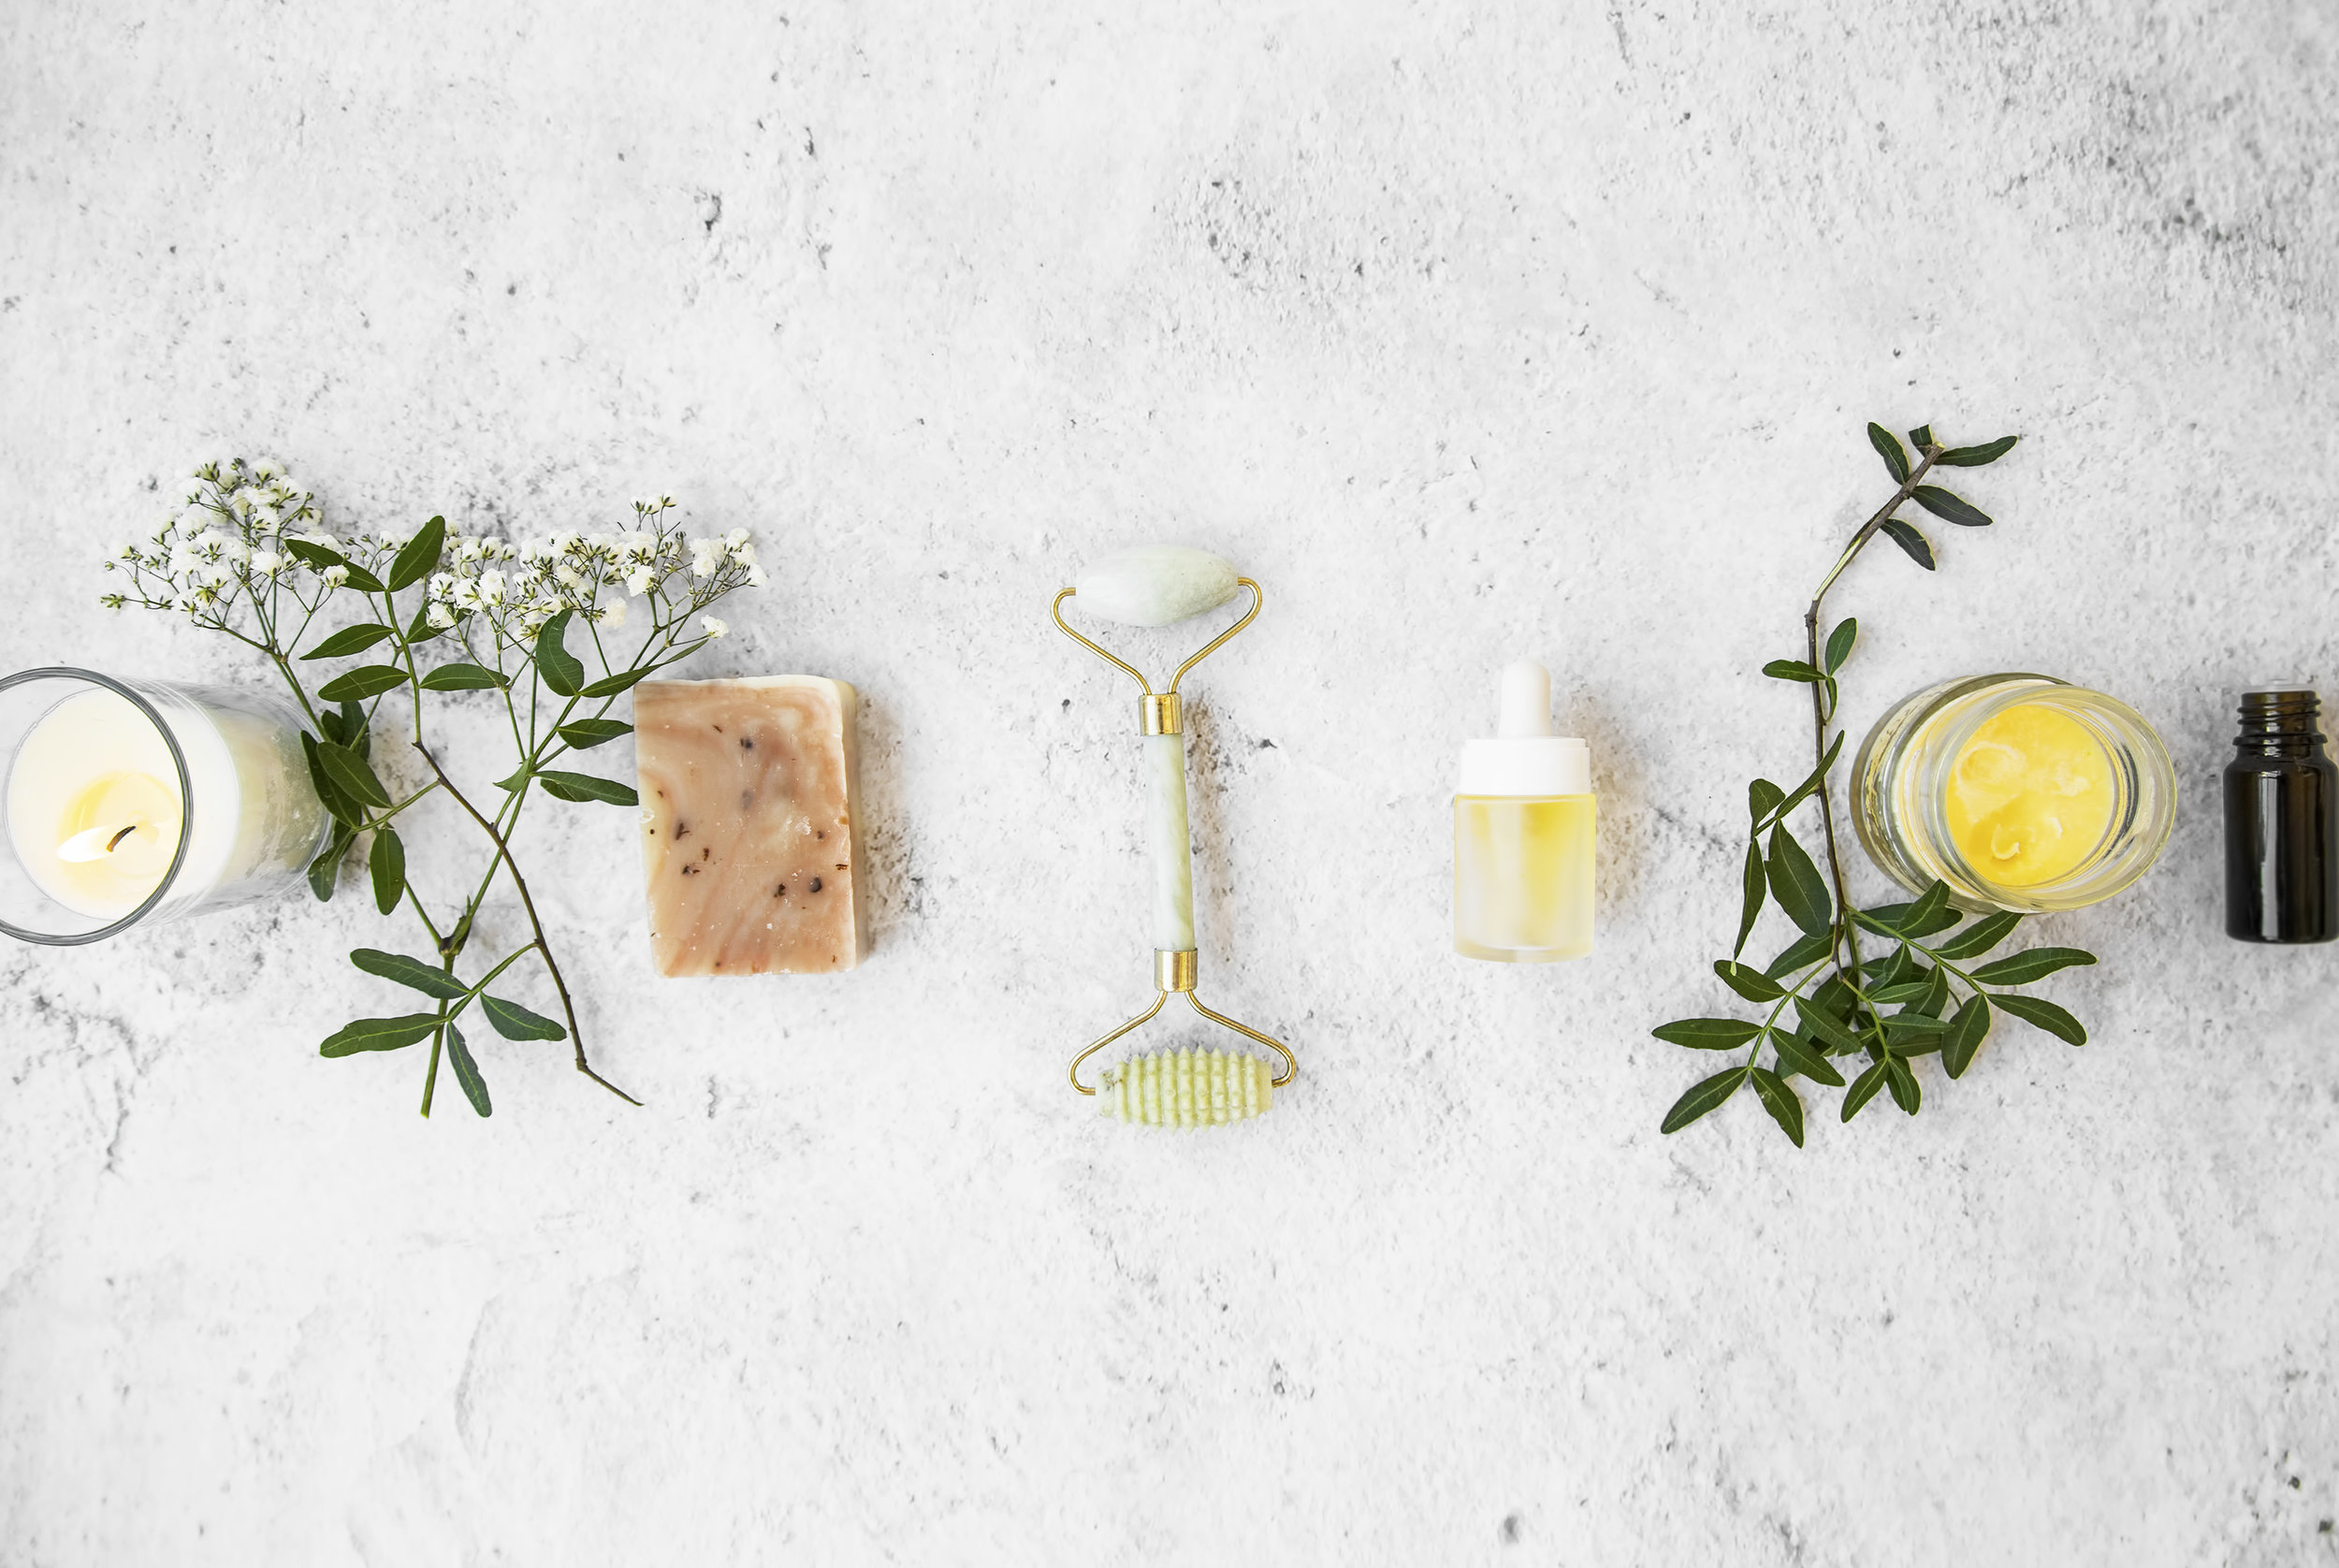 Natural organic skincare products on concrete background, top view, green natural skincare and beauty care with natural soap,jade roller, essential oils bottles, floral extracts and candle